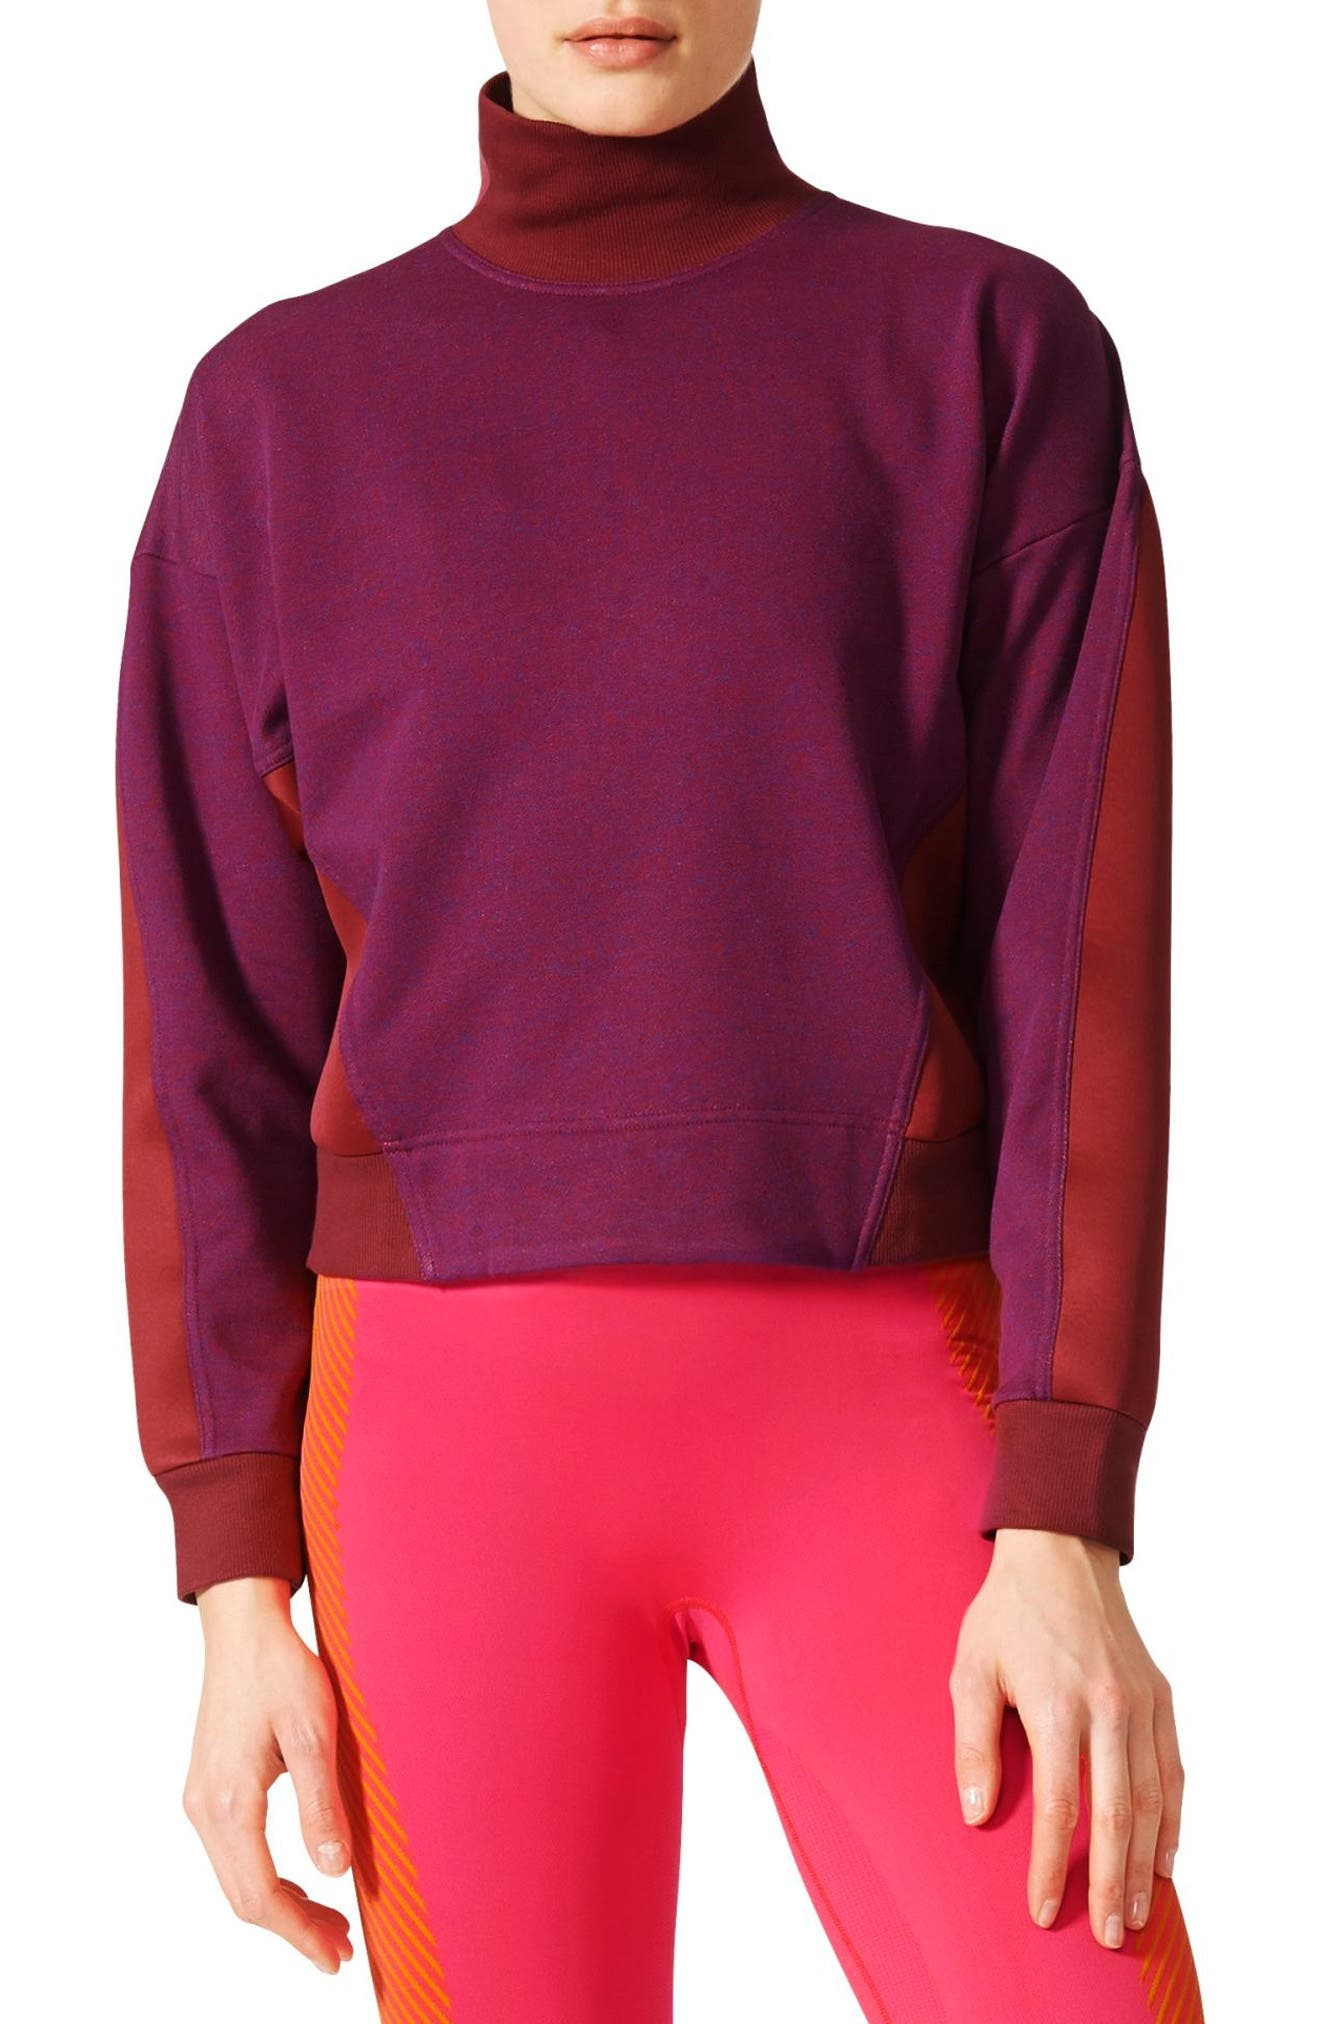 Yoga Turtleneck Sweatshirt,                         Main,                         color, 599